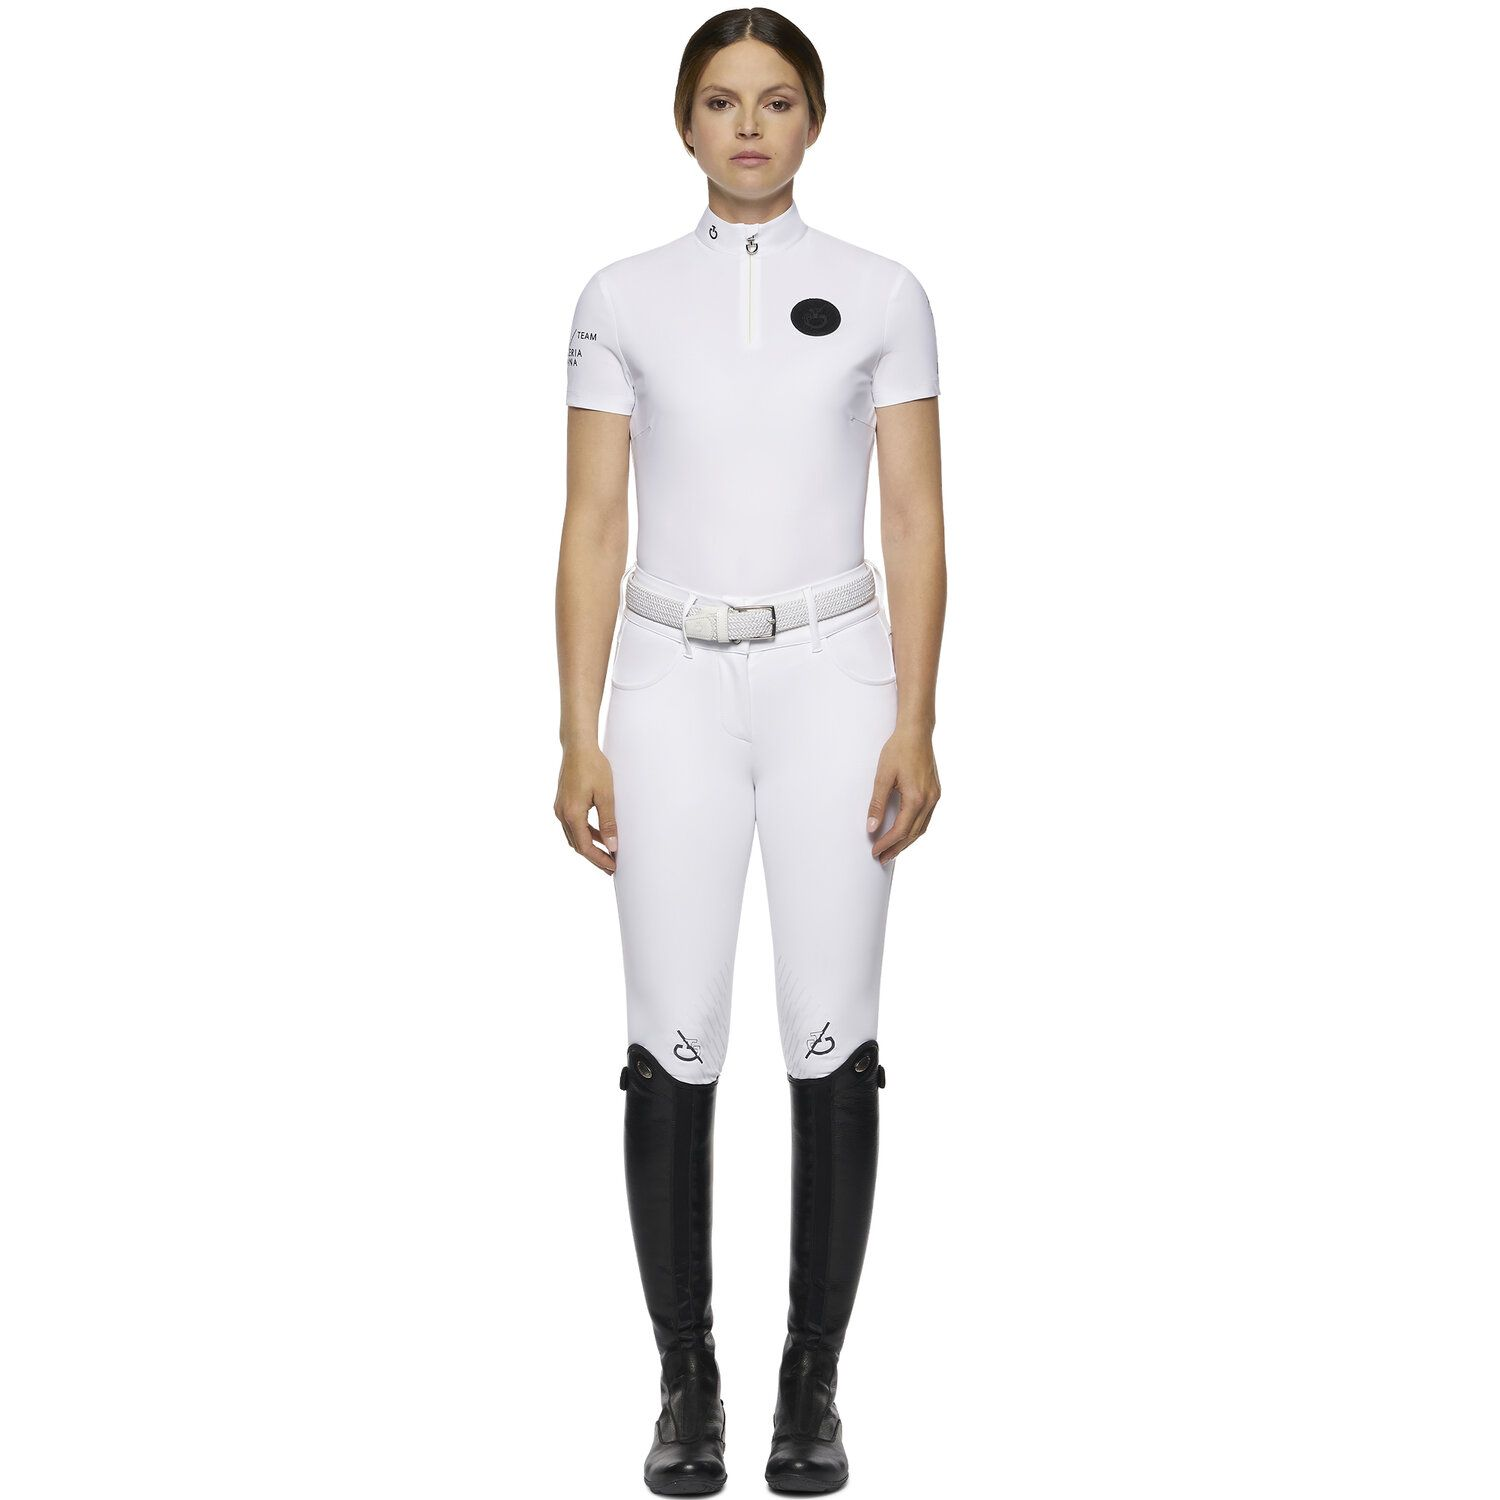 TEAM women short sleeve competition polo